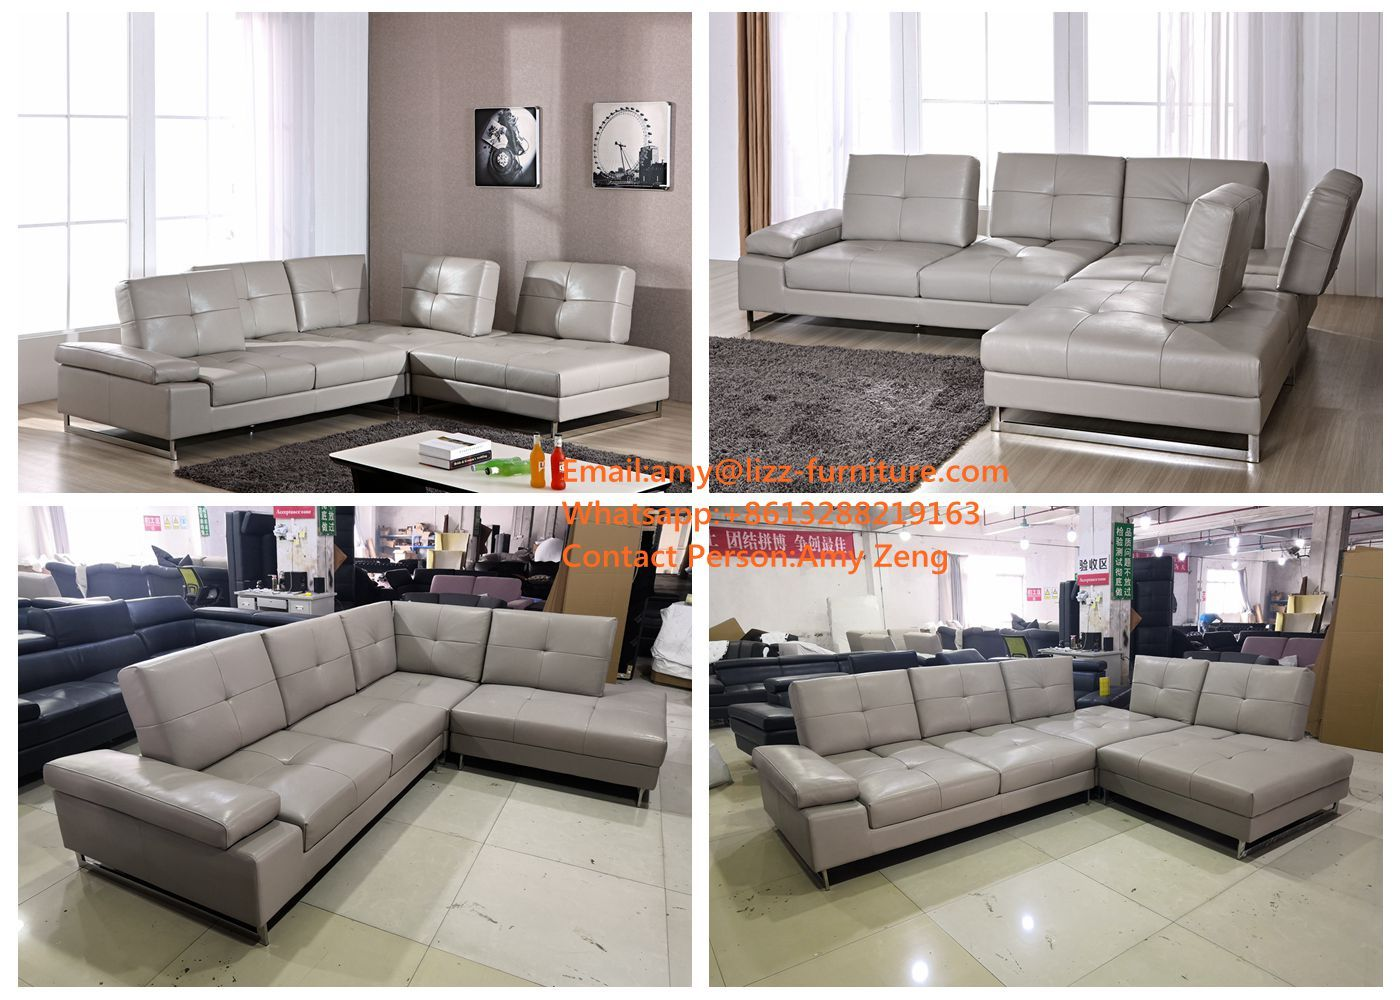 Dark Grey Couch Also Luxury Couch Schlaffunktion Neu 50 Lizz Furniture New Design Simple Canada Style Corner Sofa With